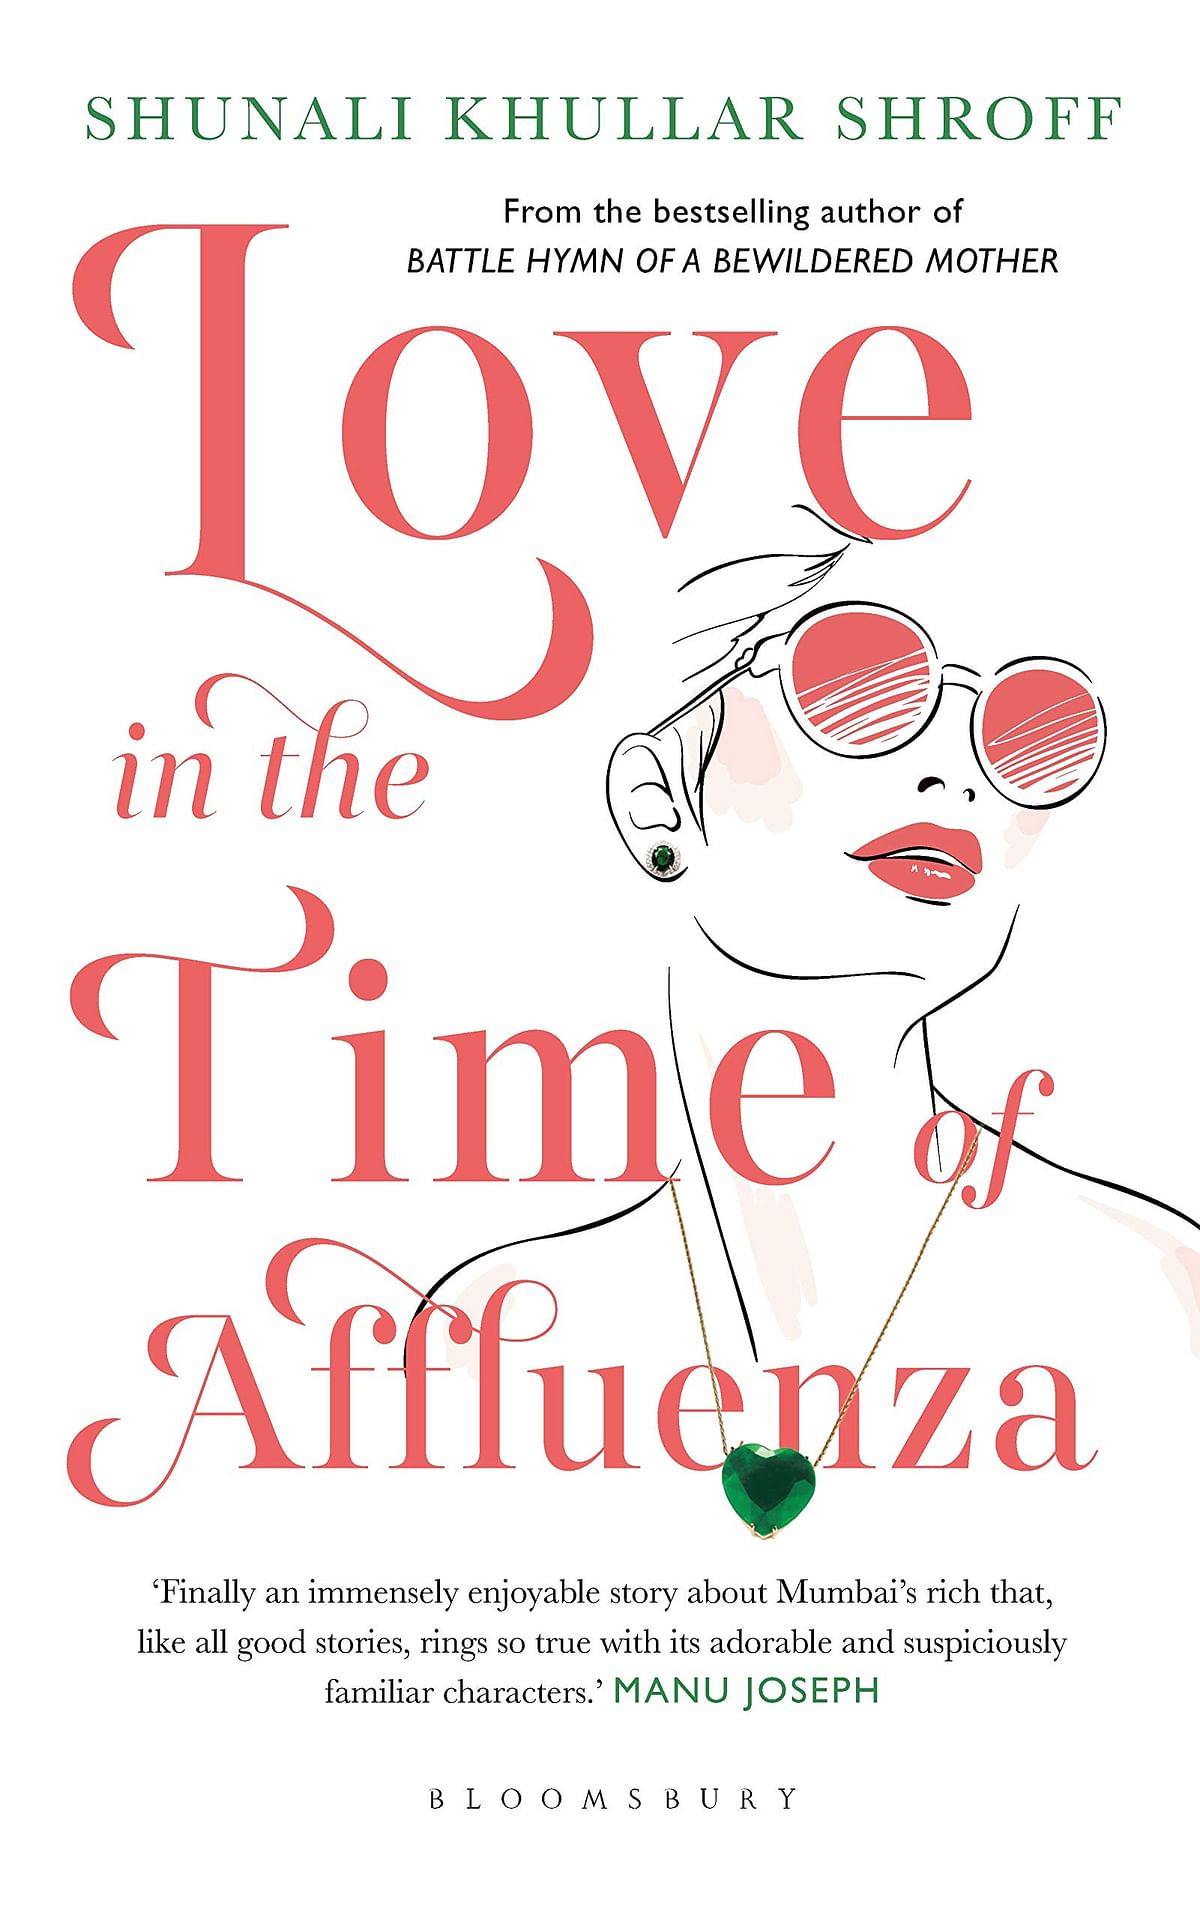 Love in the Times of Affluenza: Loneliness and lovelessness